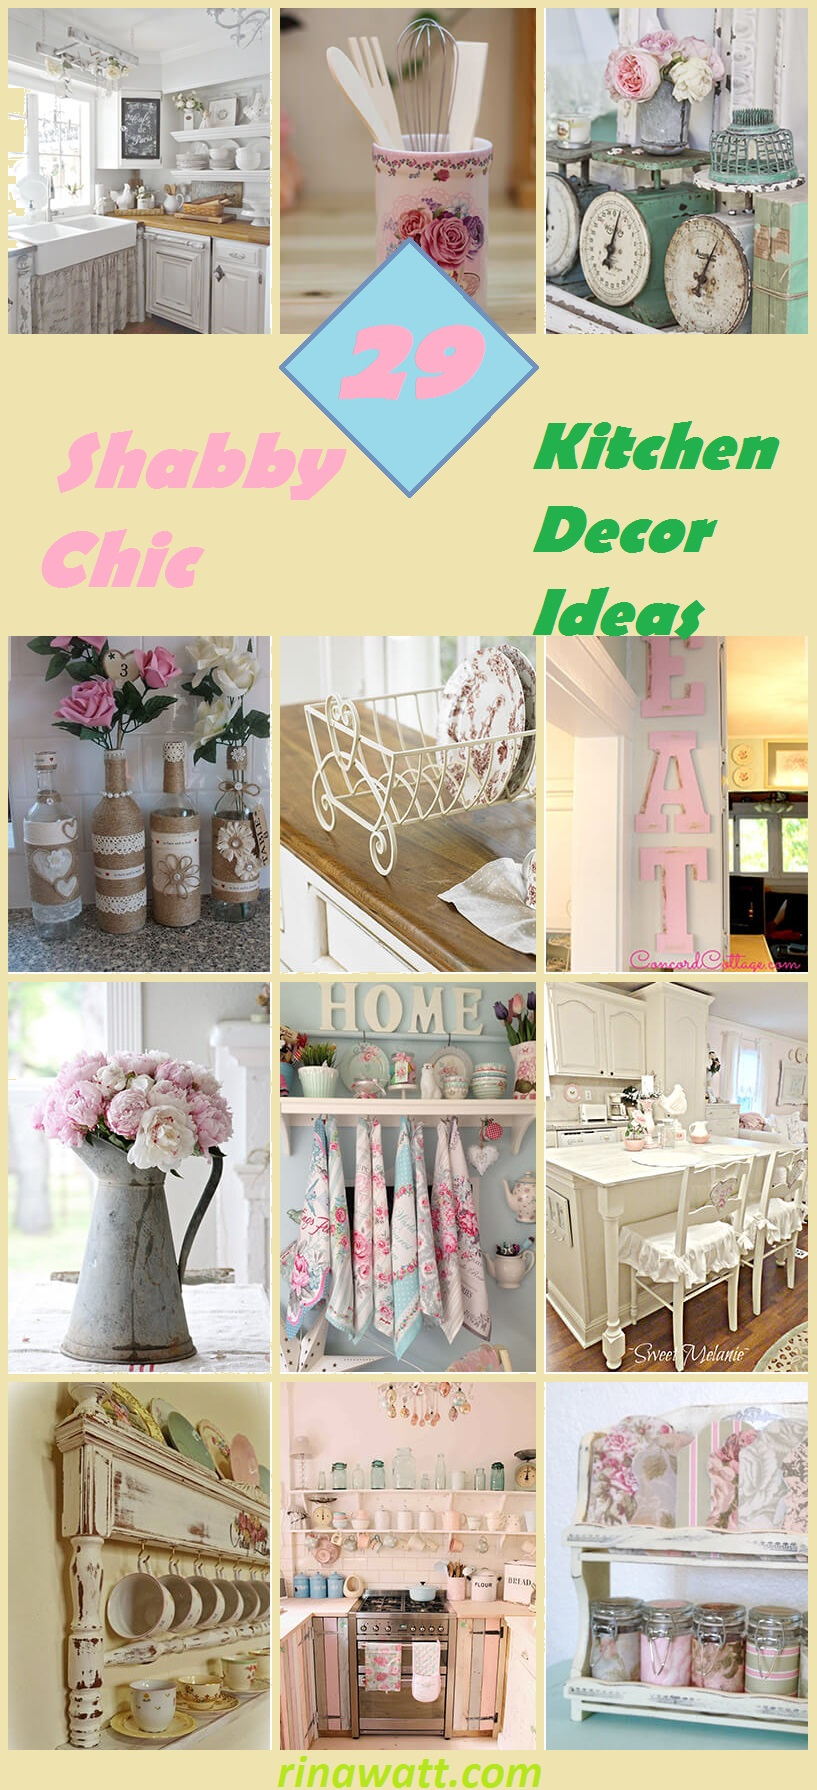 29 Gorgeous Shabby Chic Kitchen Decor Ideas That Are Comfy Cozy And